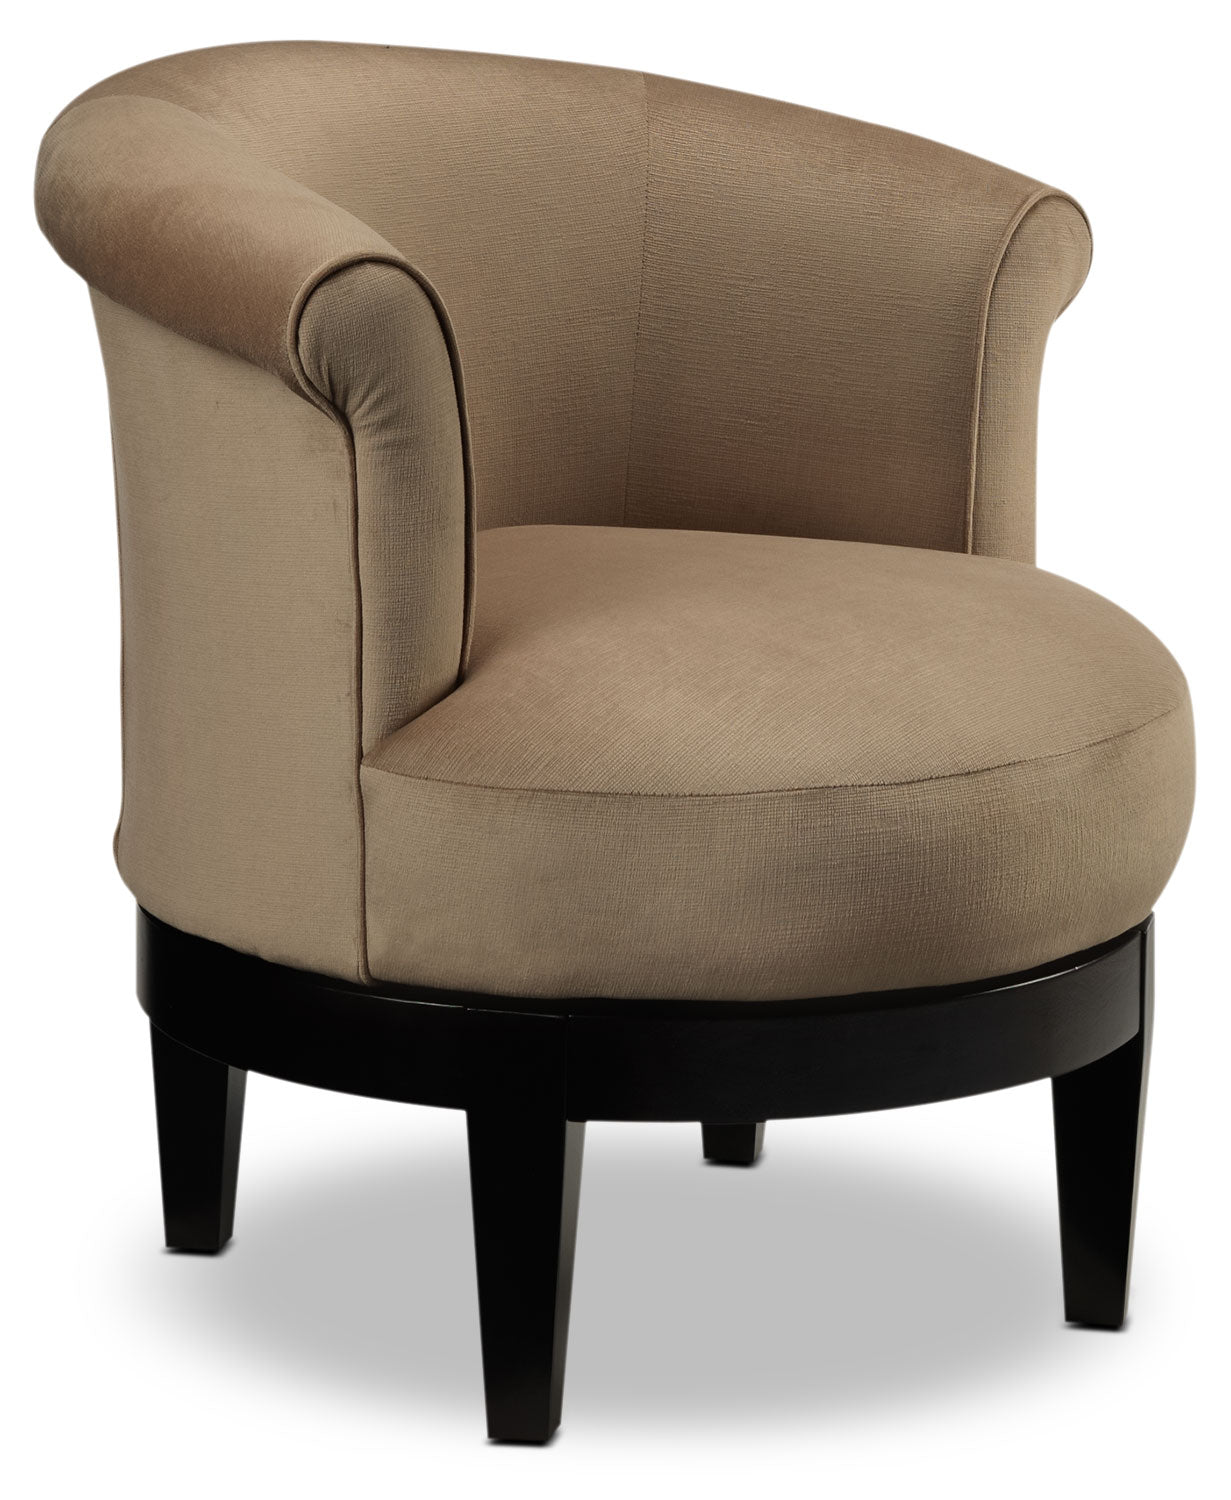 Kalosa Swivel Accent Chair: Attica Swivel Accent Chair - Coffee